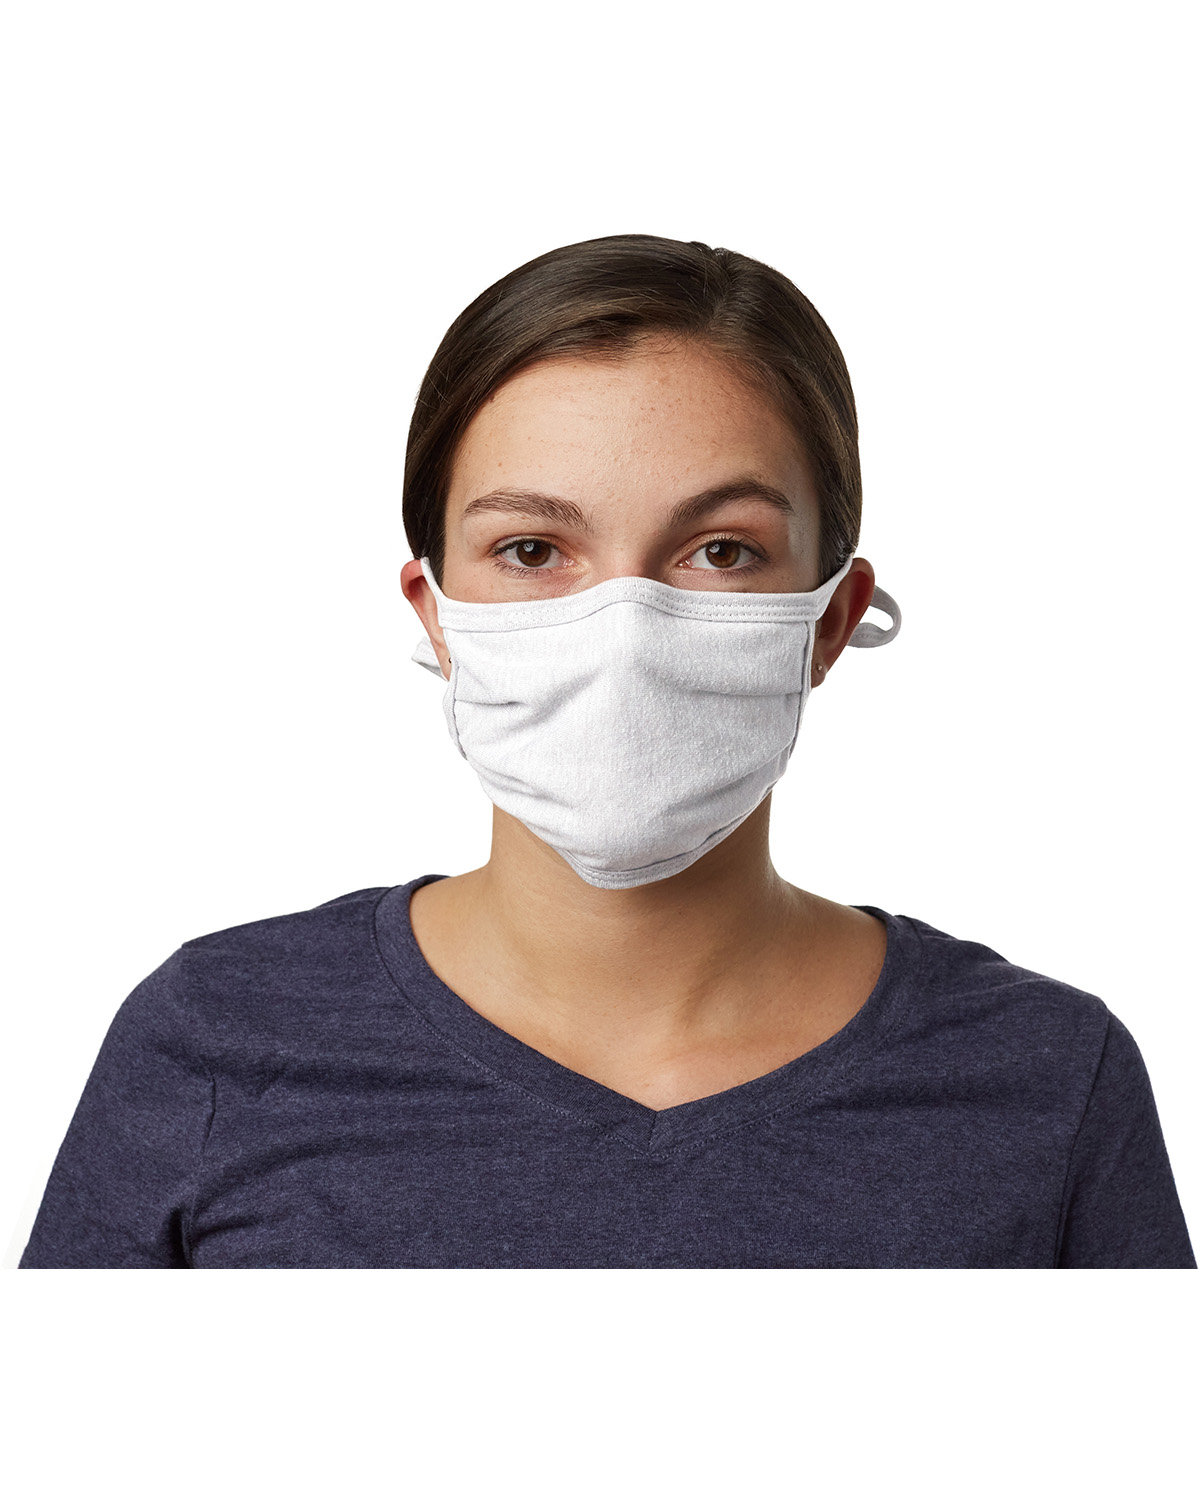 Hanes Adult 2-Ply Adjustable Mask WHITE